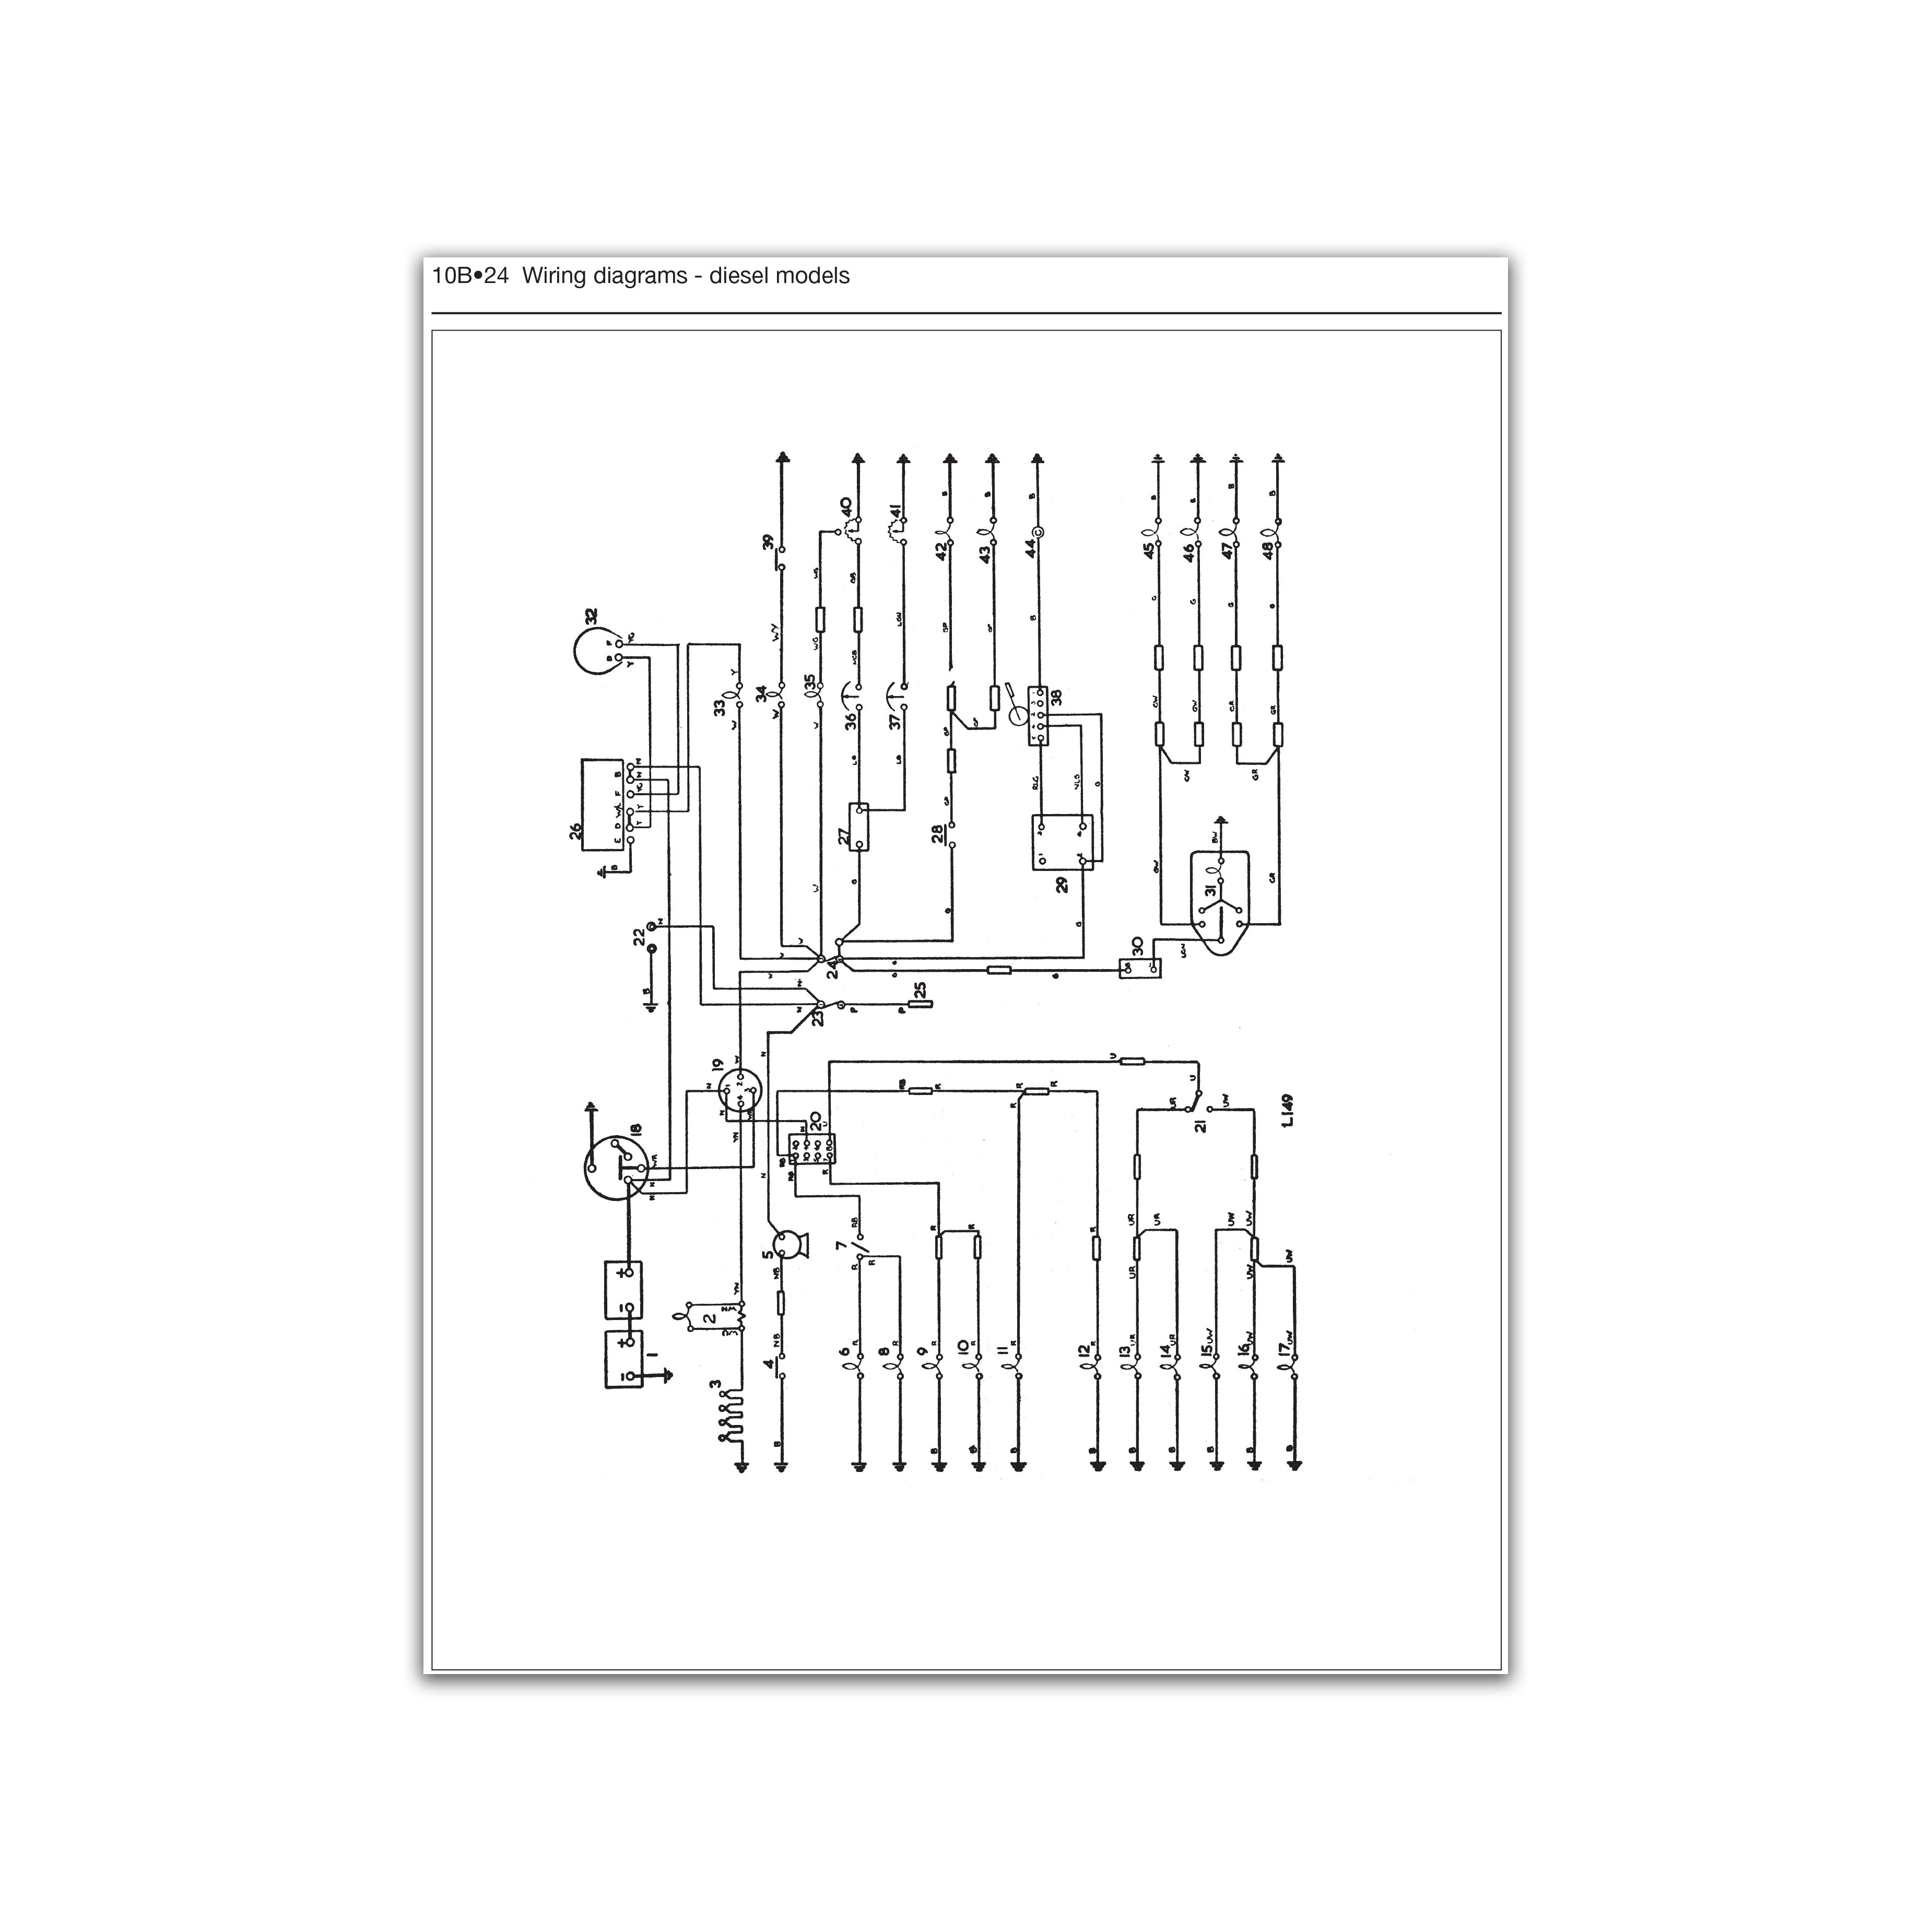 Haynes Repair Manual 92055 Toyota Land Cruiser Fj40 Fj43 Fj45 Fj55 68 4wd Industries: Fj40 Inside Door Part Diagram At Chusao.net